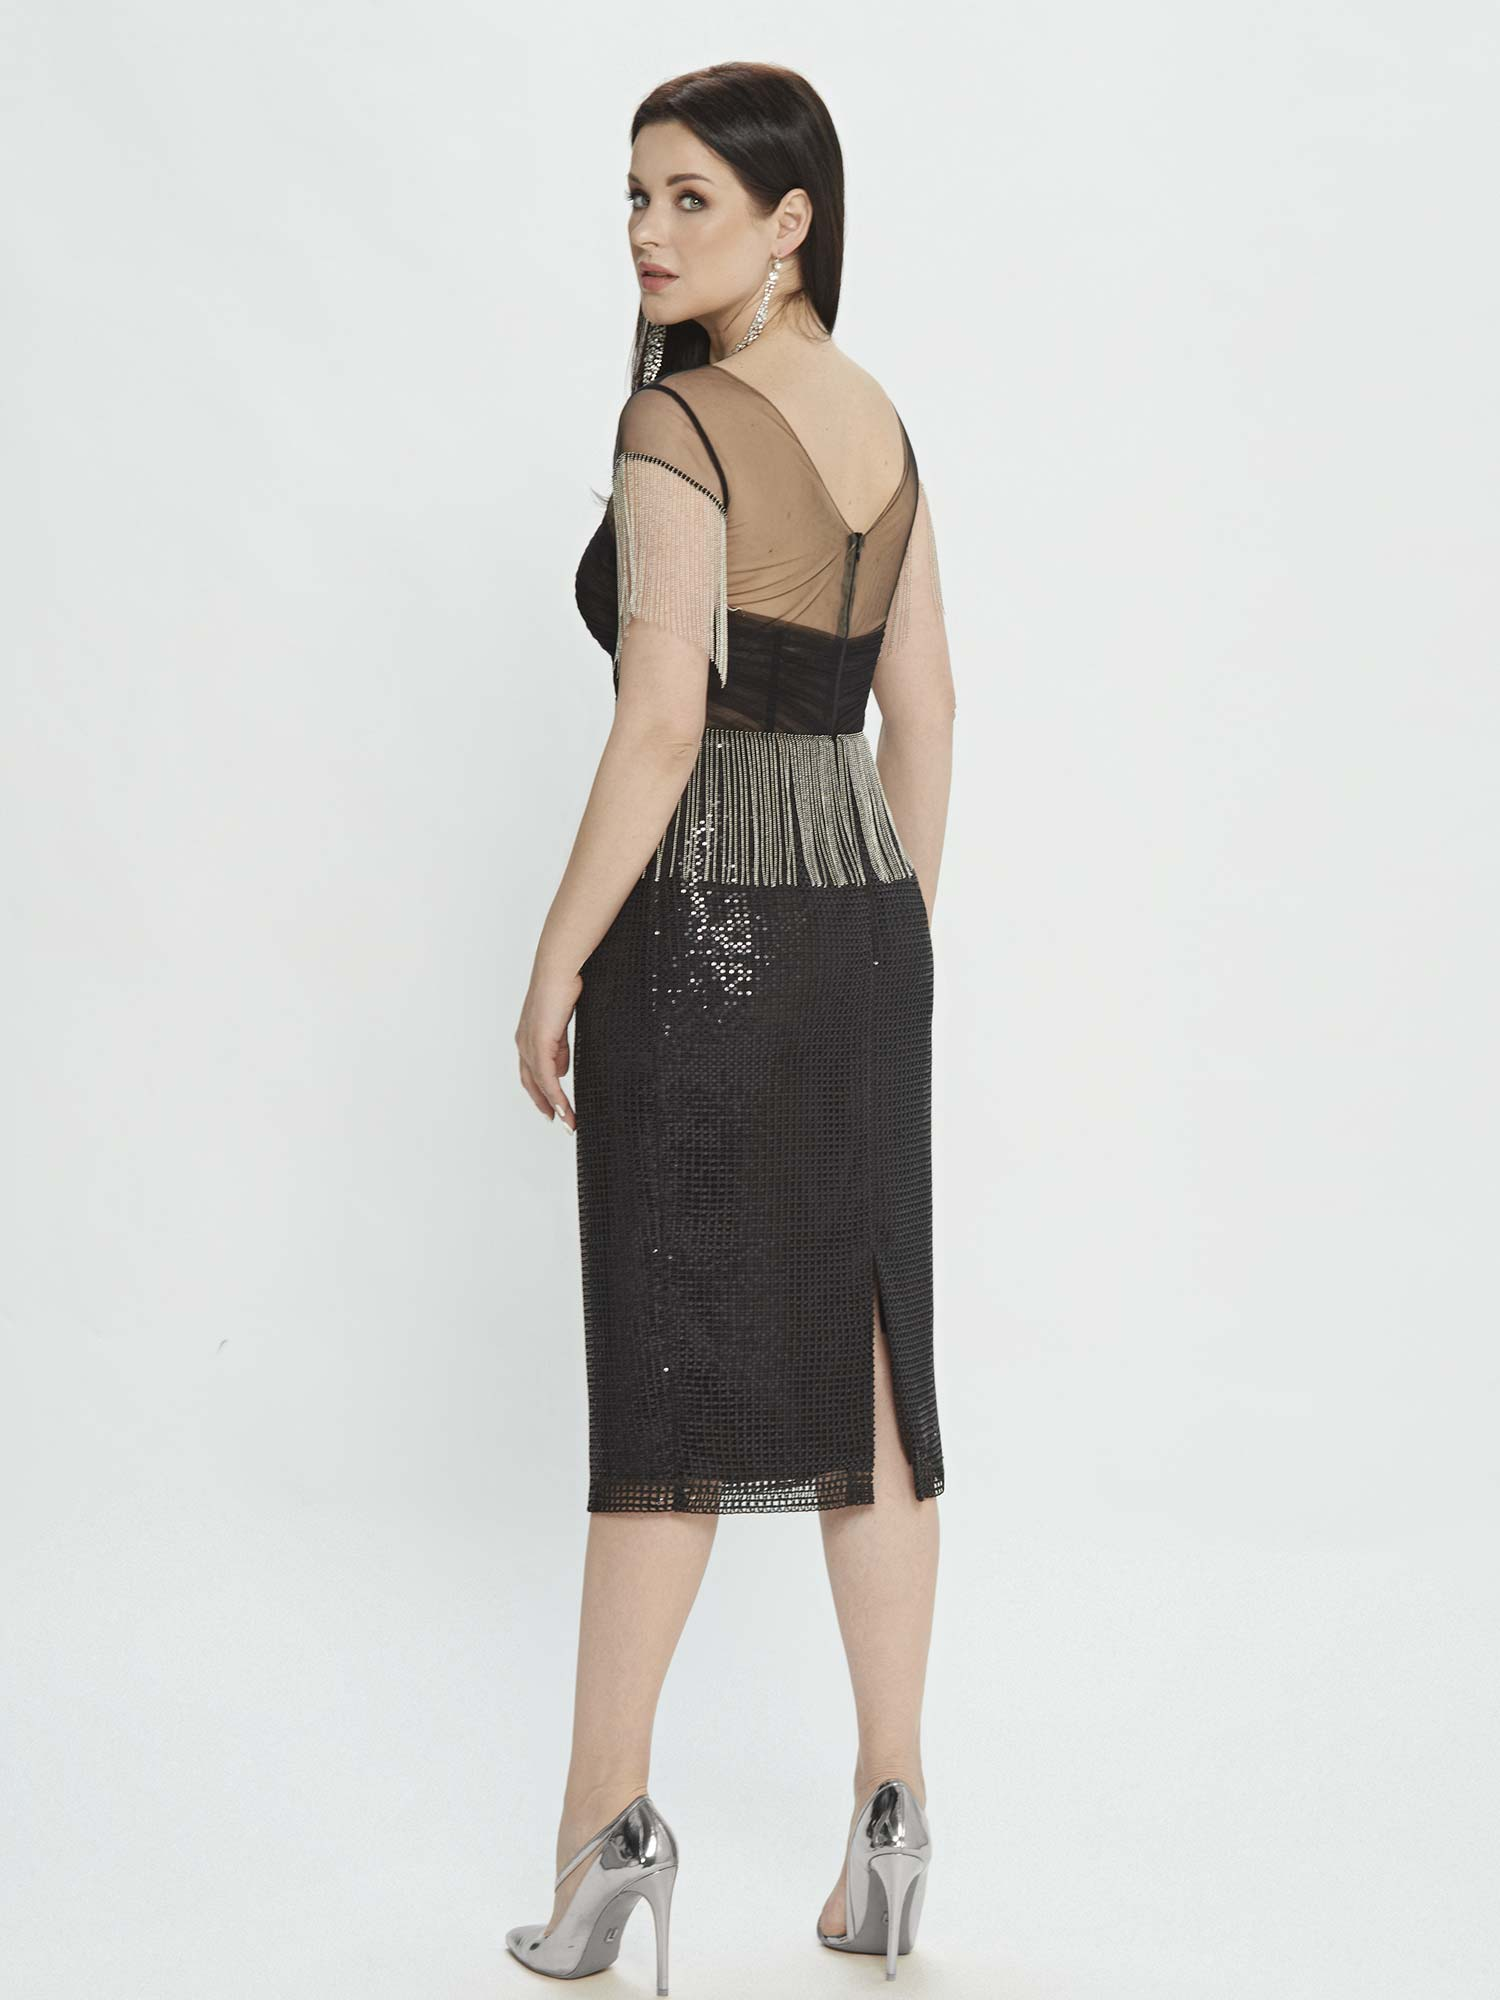 Style #M508, sheath dress with fringe and sequinned embroidery, available in black